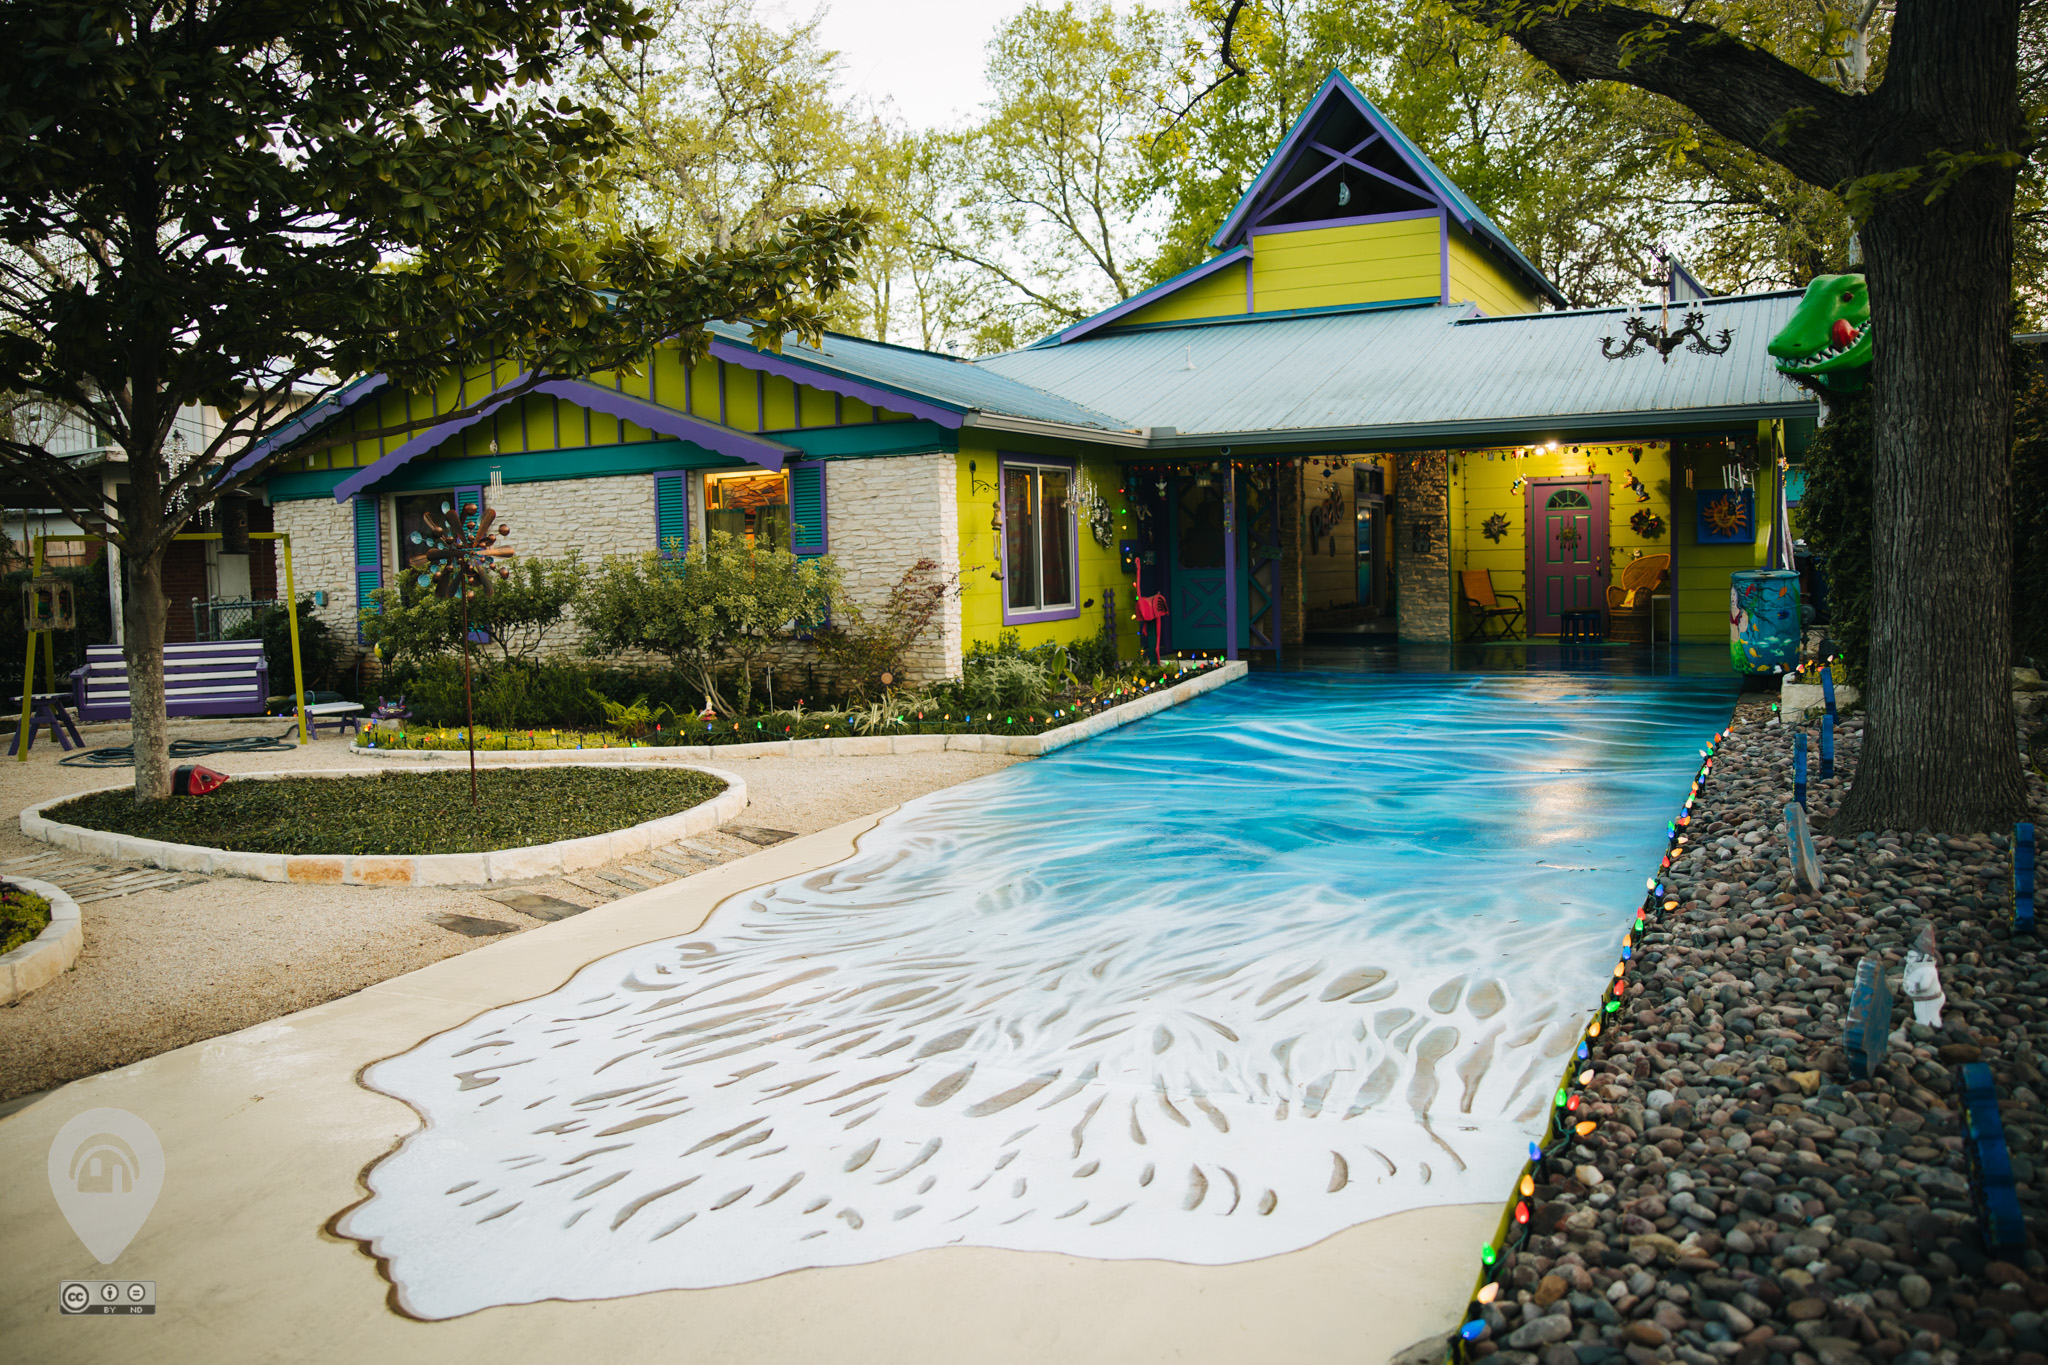 Lois Goodman's Under the Sea Home